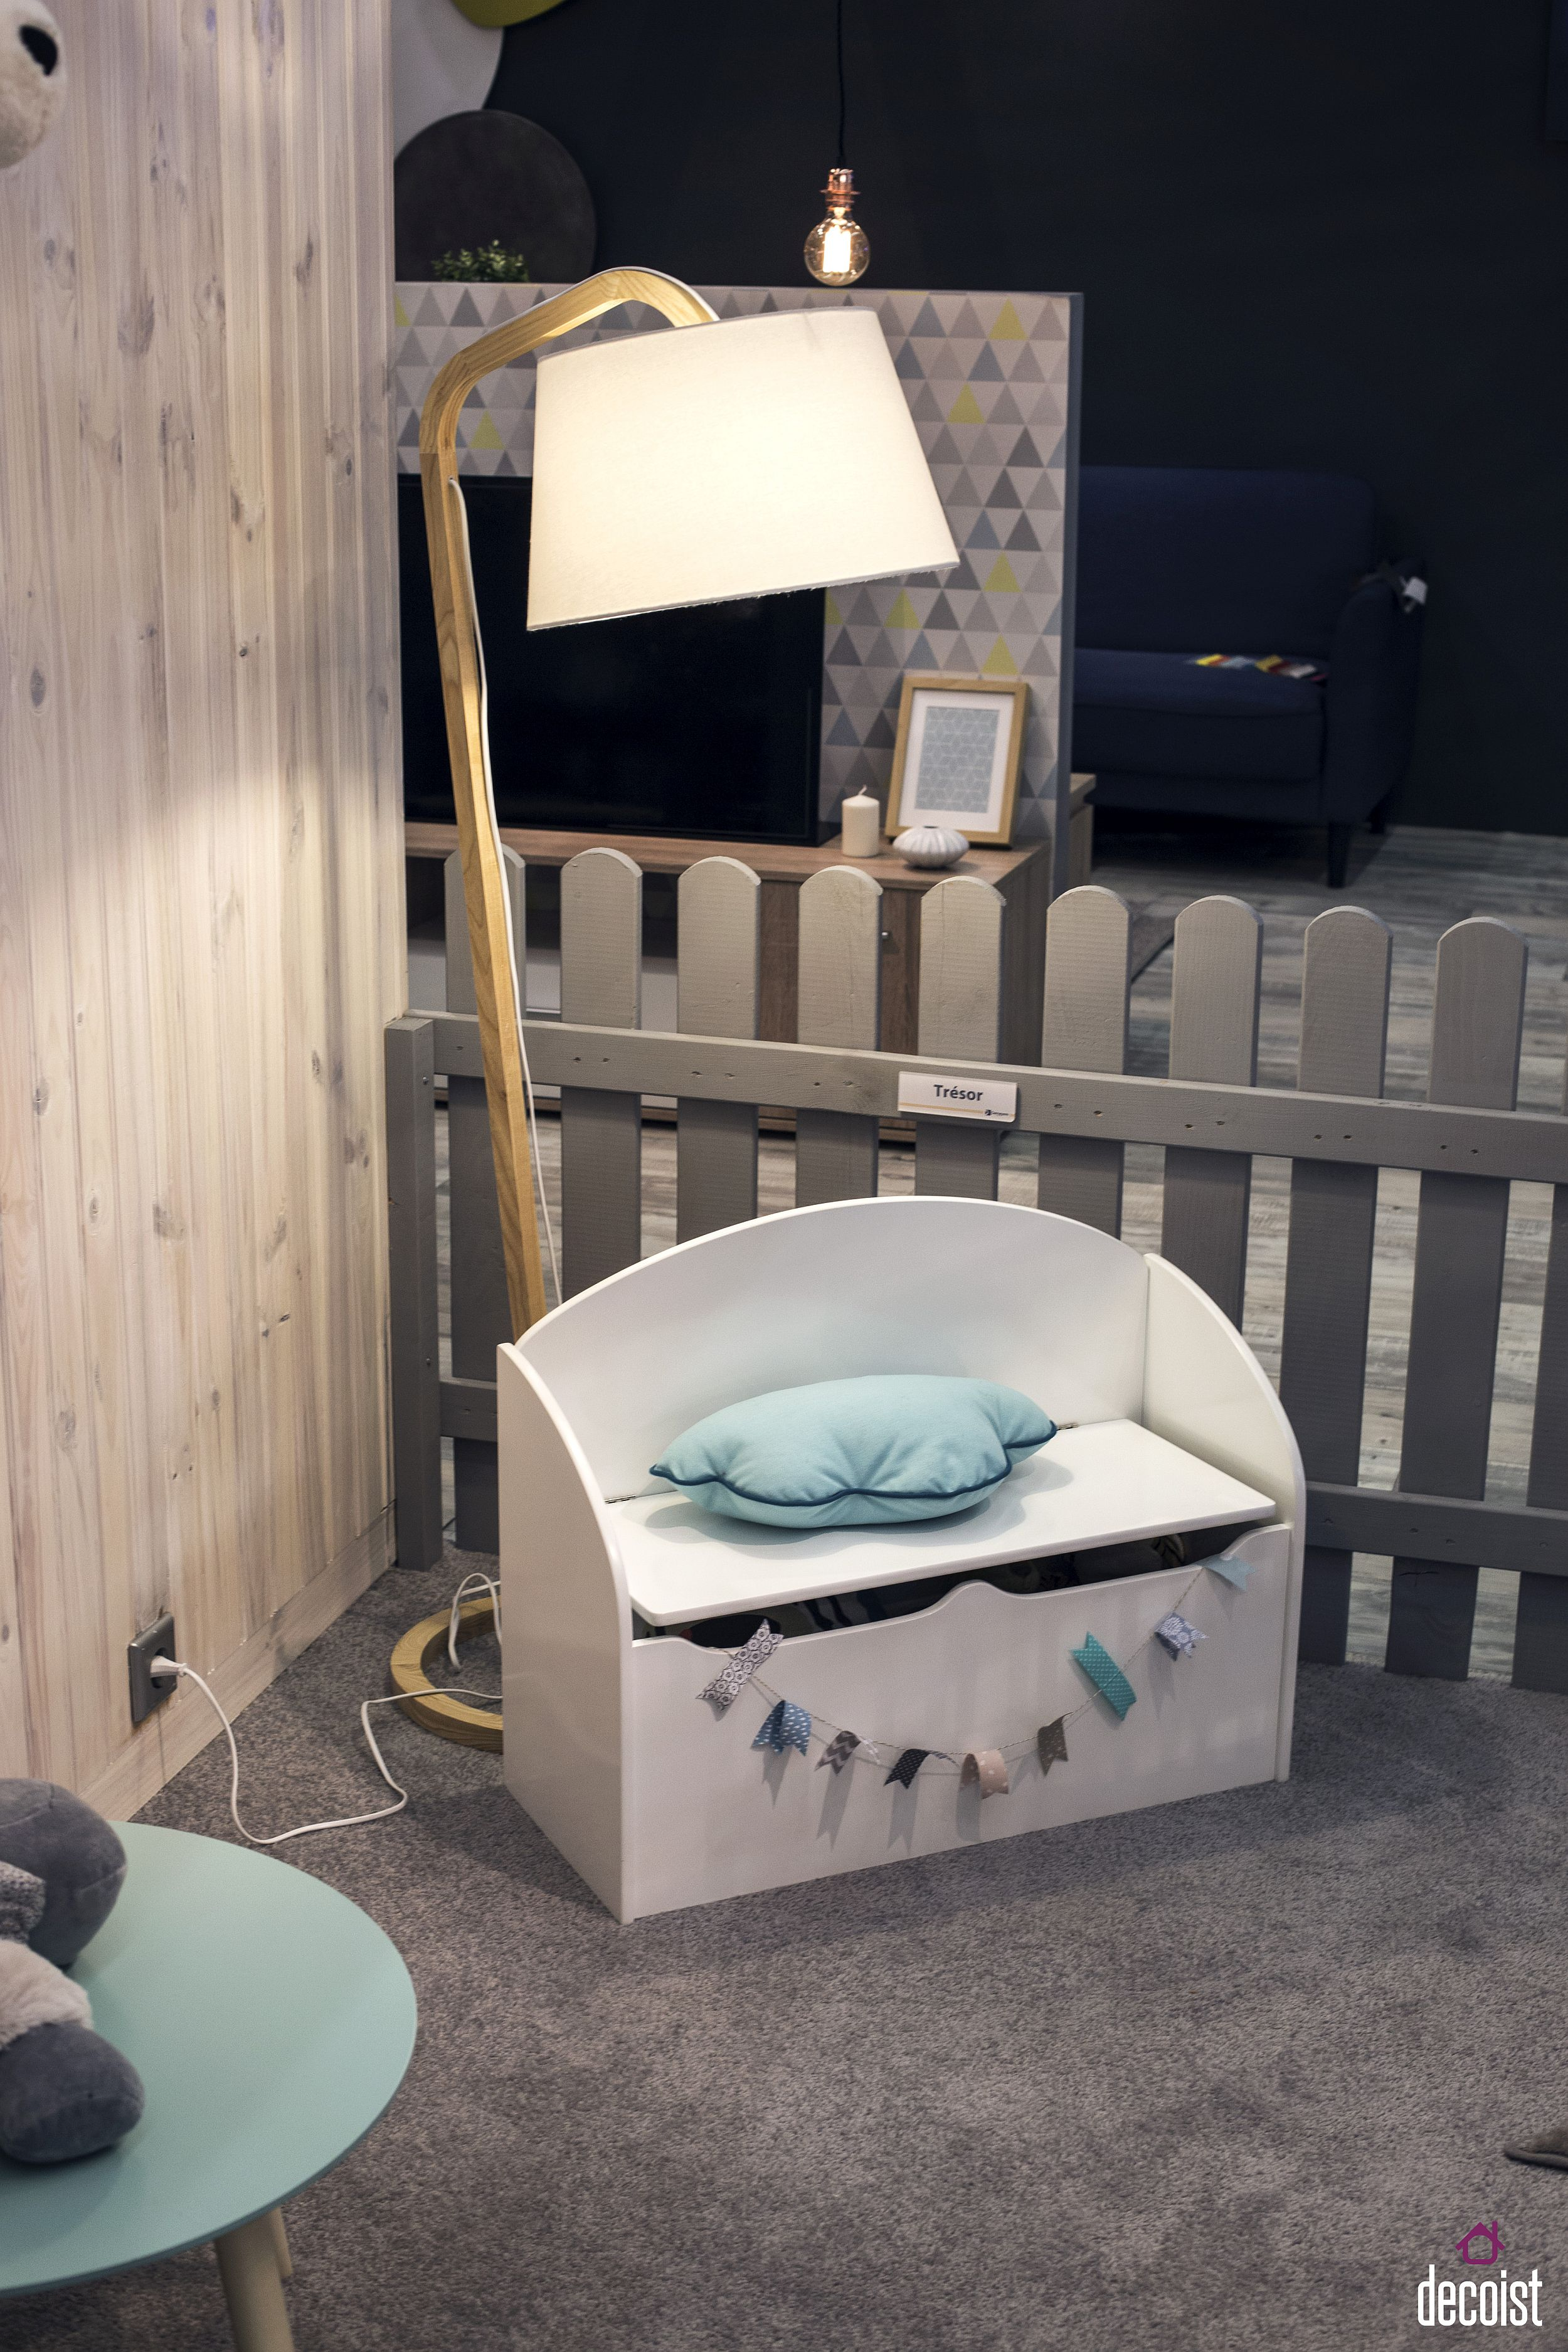 Super-cute kids' chair with storage and a pillow is both space-savvy and perfect for the playroom